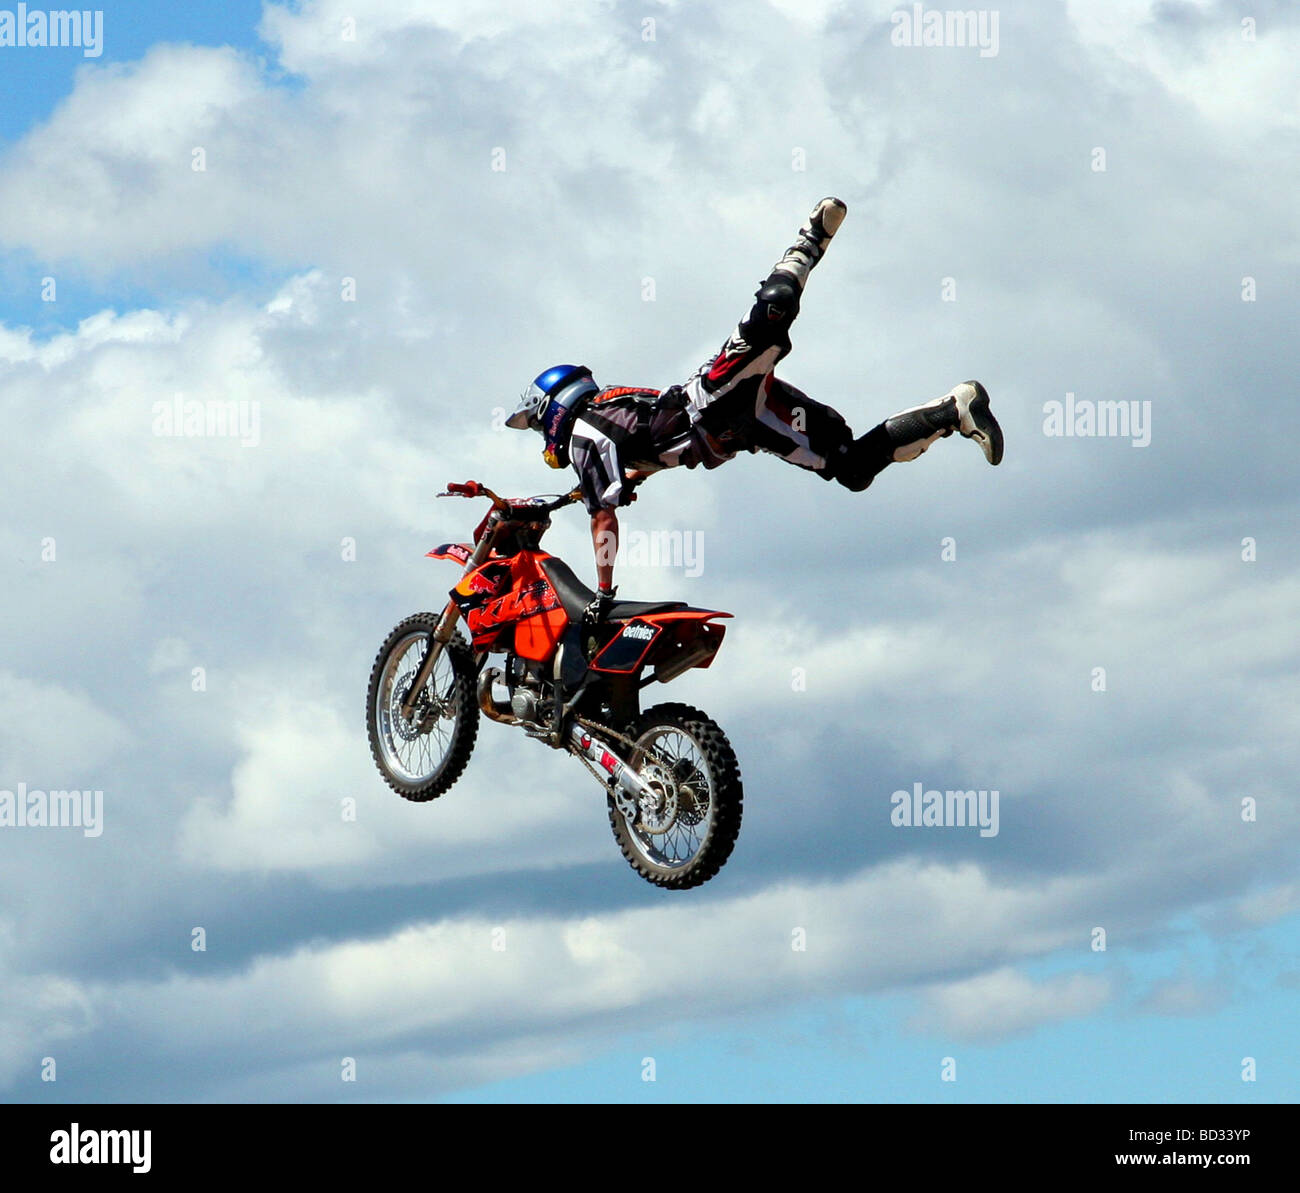 X-games Motorcycle sports in New Zealand Stock Photo